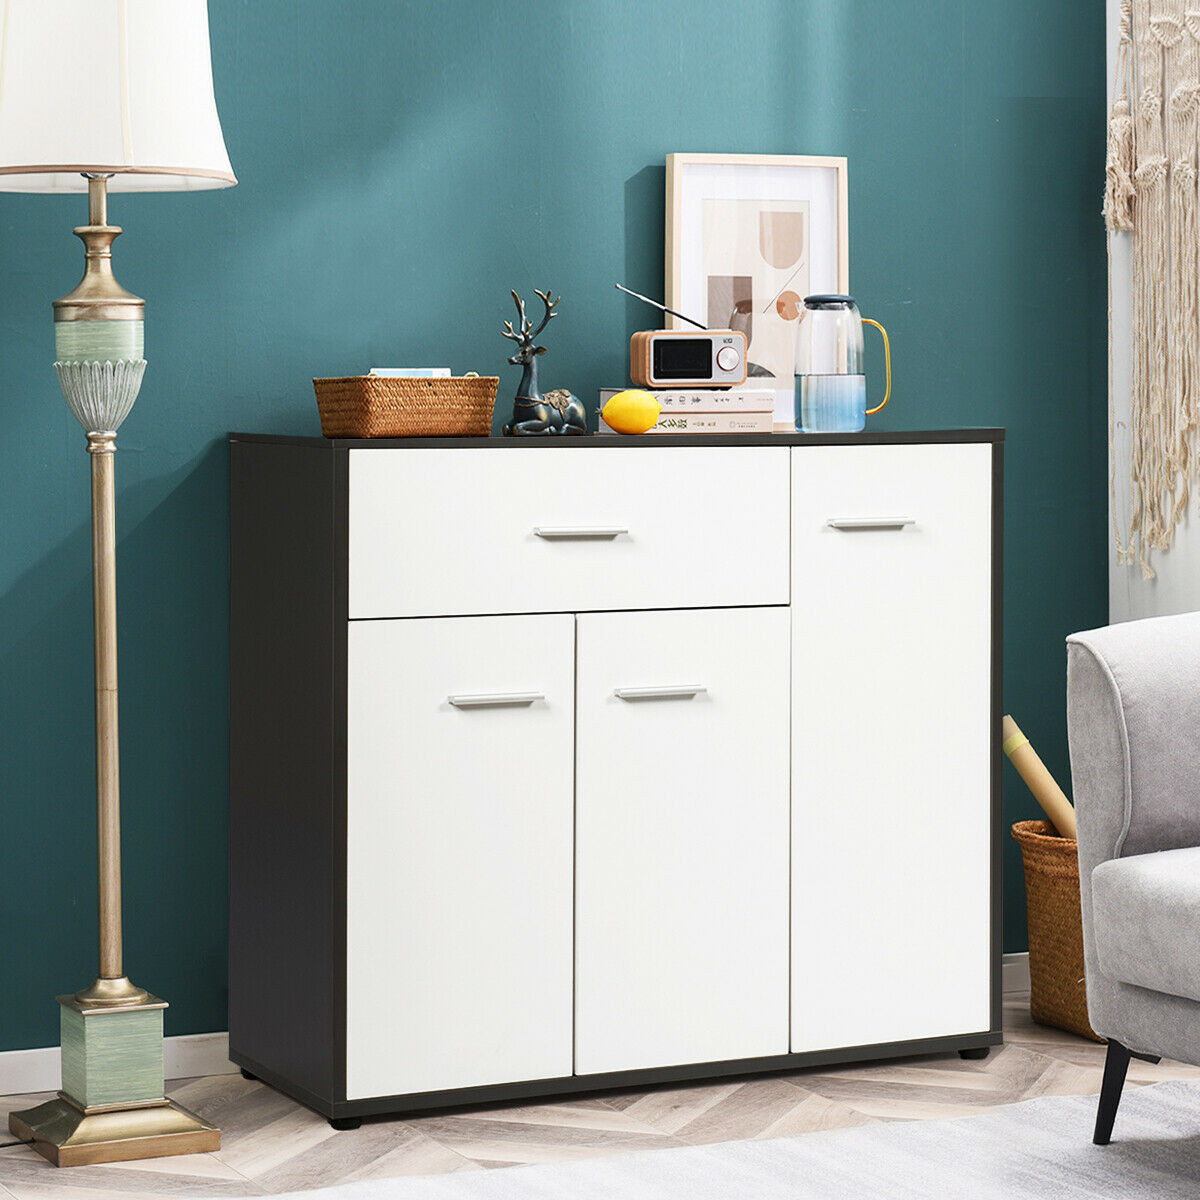 Picture of: Buffet Sideboard Storing Cabinet Table Unit Chipboard Solid Structure Sideboard Large Storage Dining Room Cabinets Sideboards Aliexpress